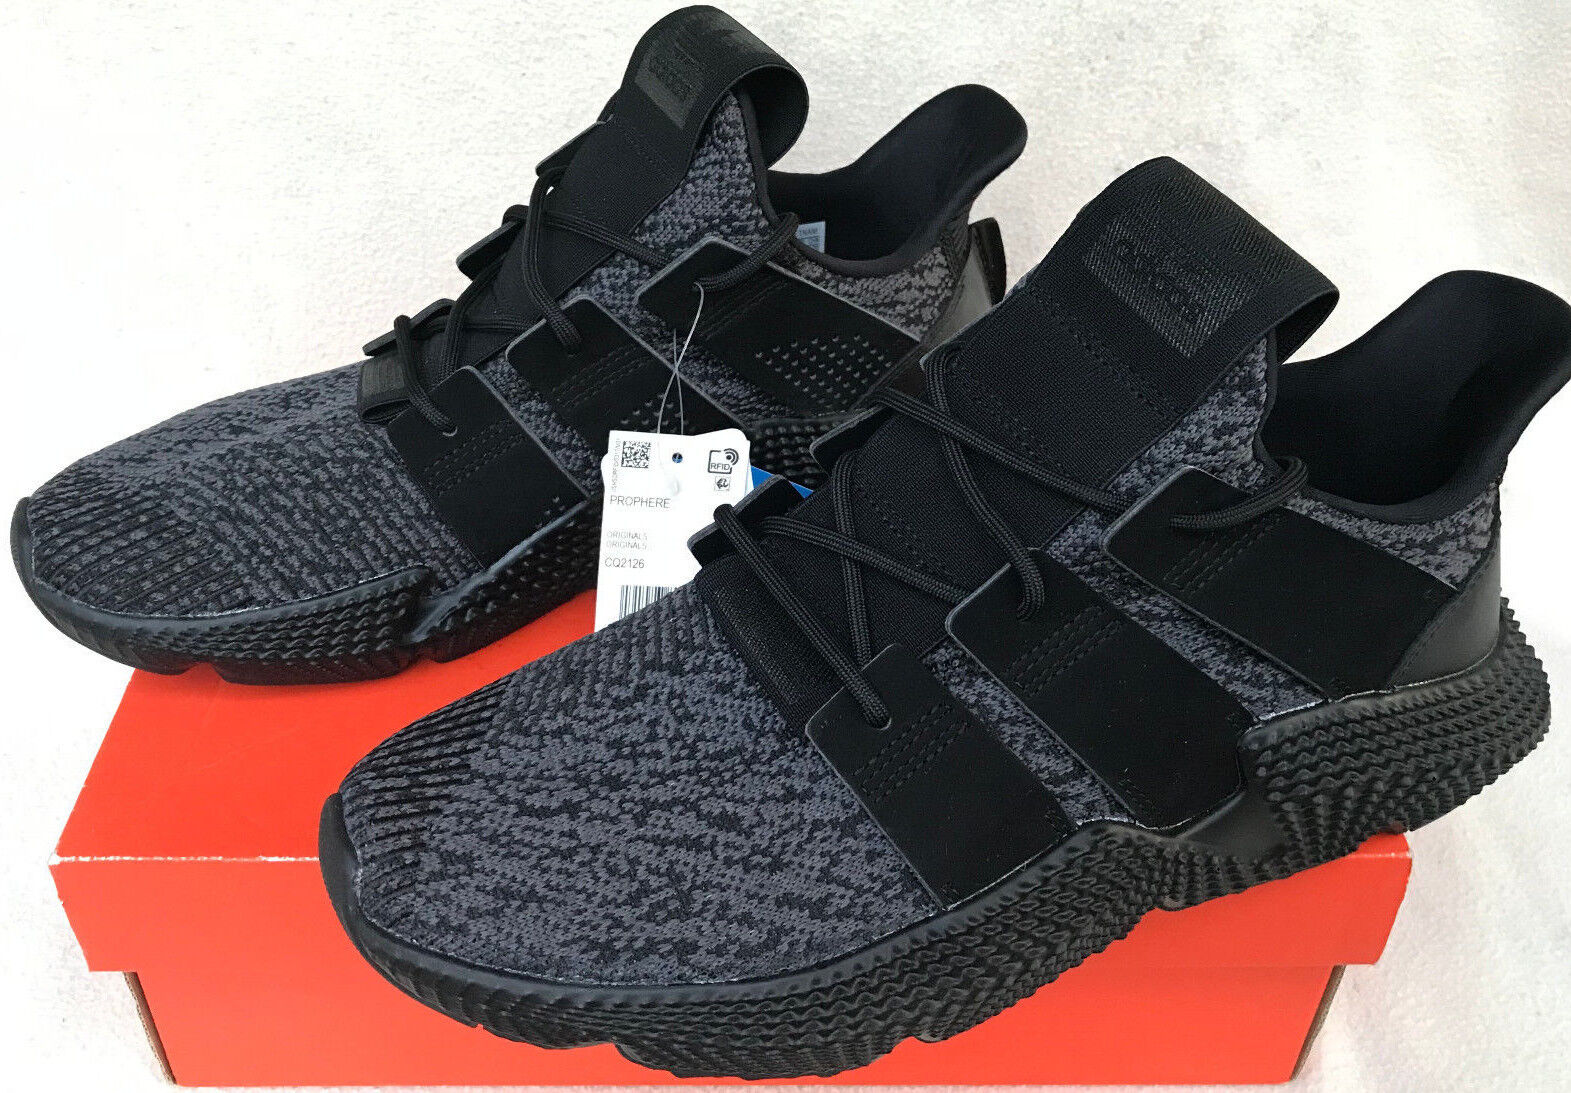 Adidas Prophere CQ2126 Ortholite Core Black Knit Street Sneakers shoes Men's 13